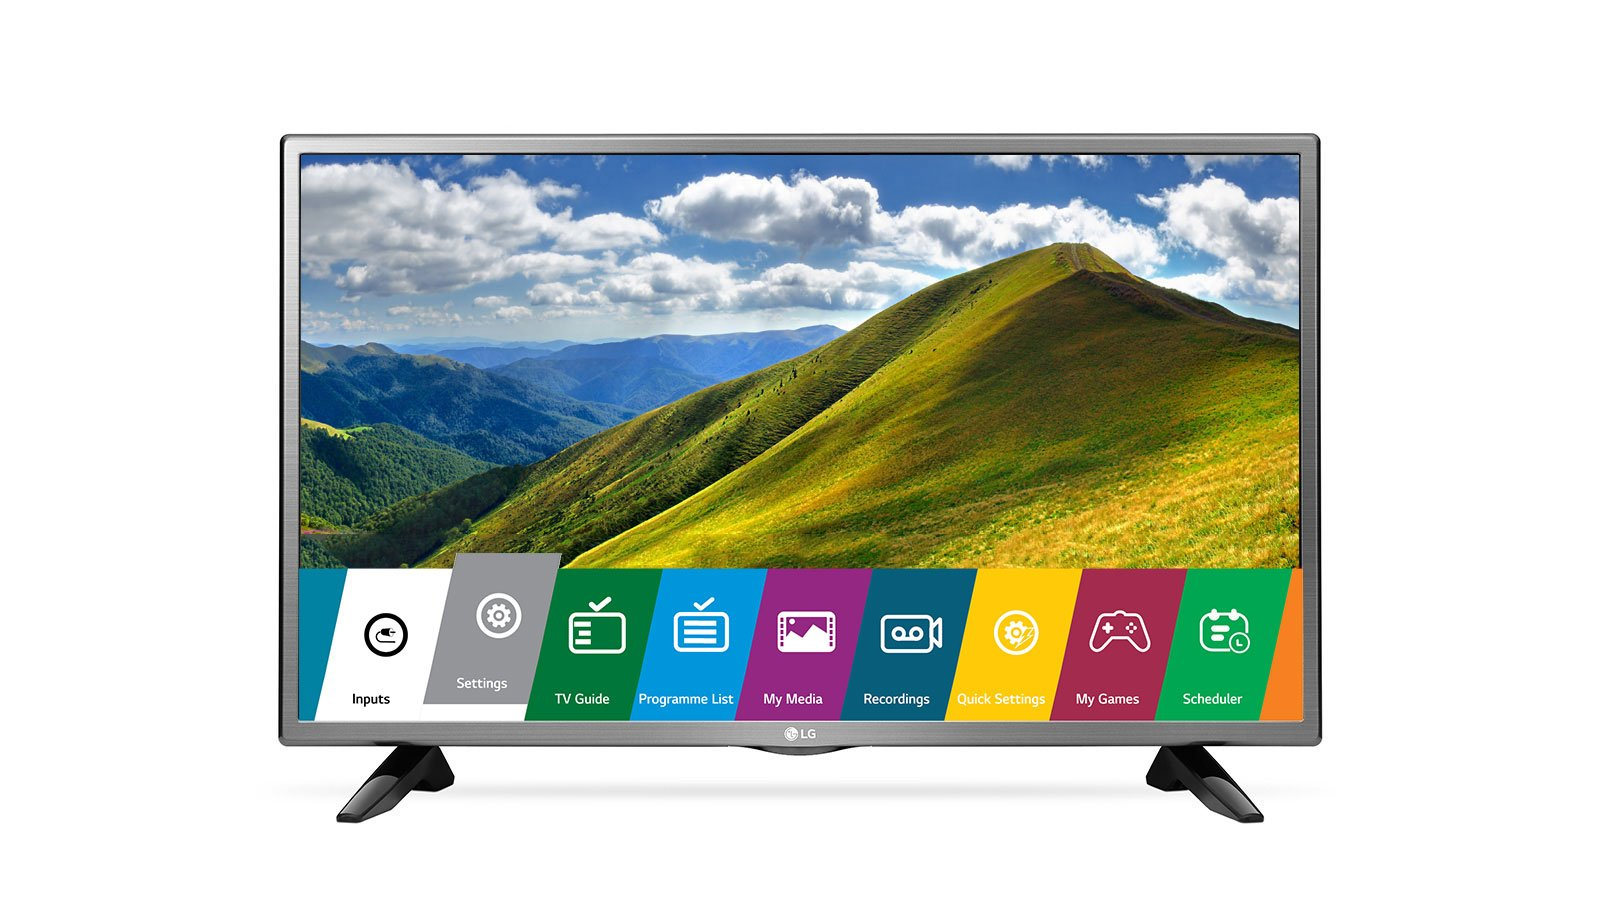 LG 80cm 32LJ522D 32 inch HD Ready LED TV get best offers deals free and coupons online at buythevalue.in